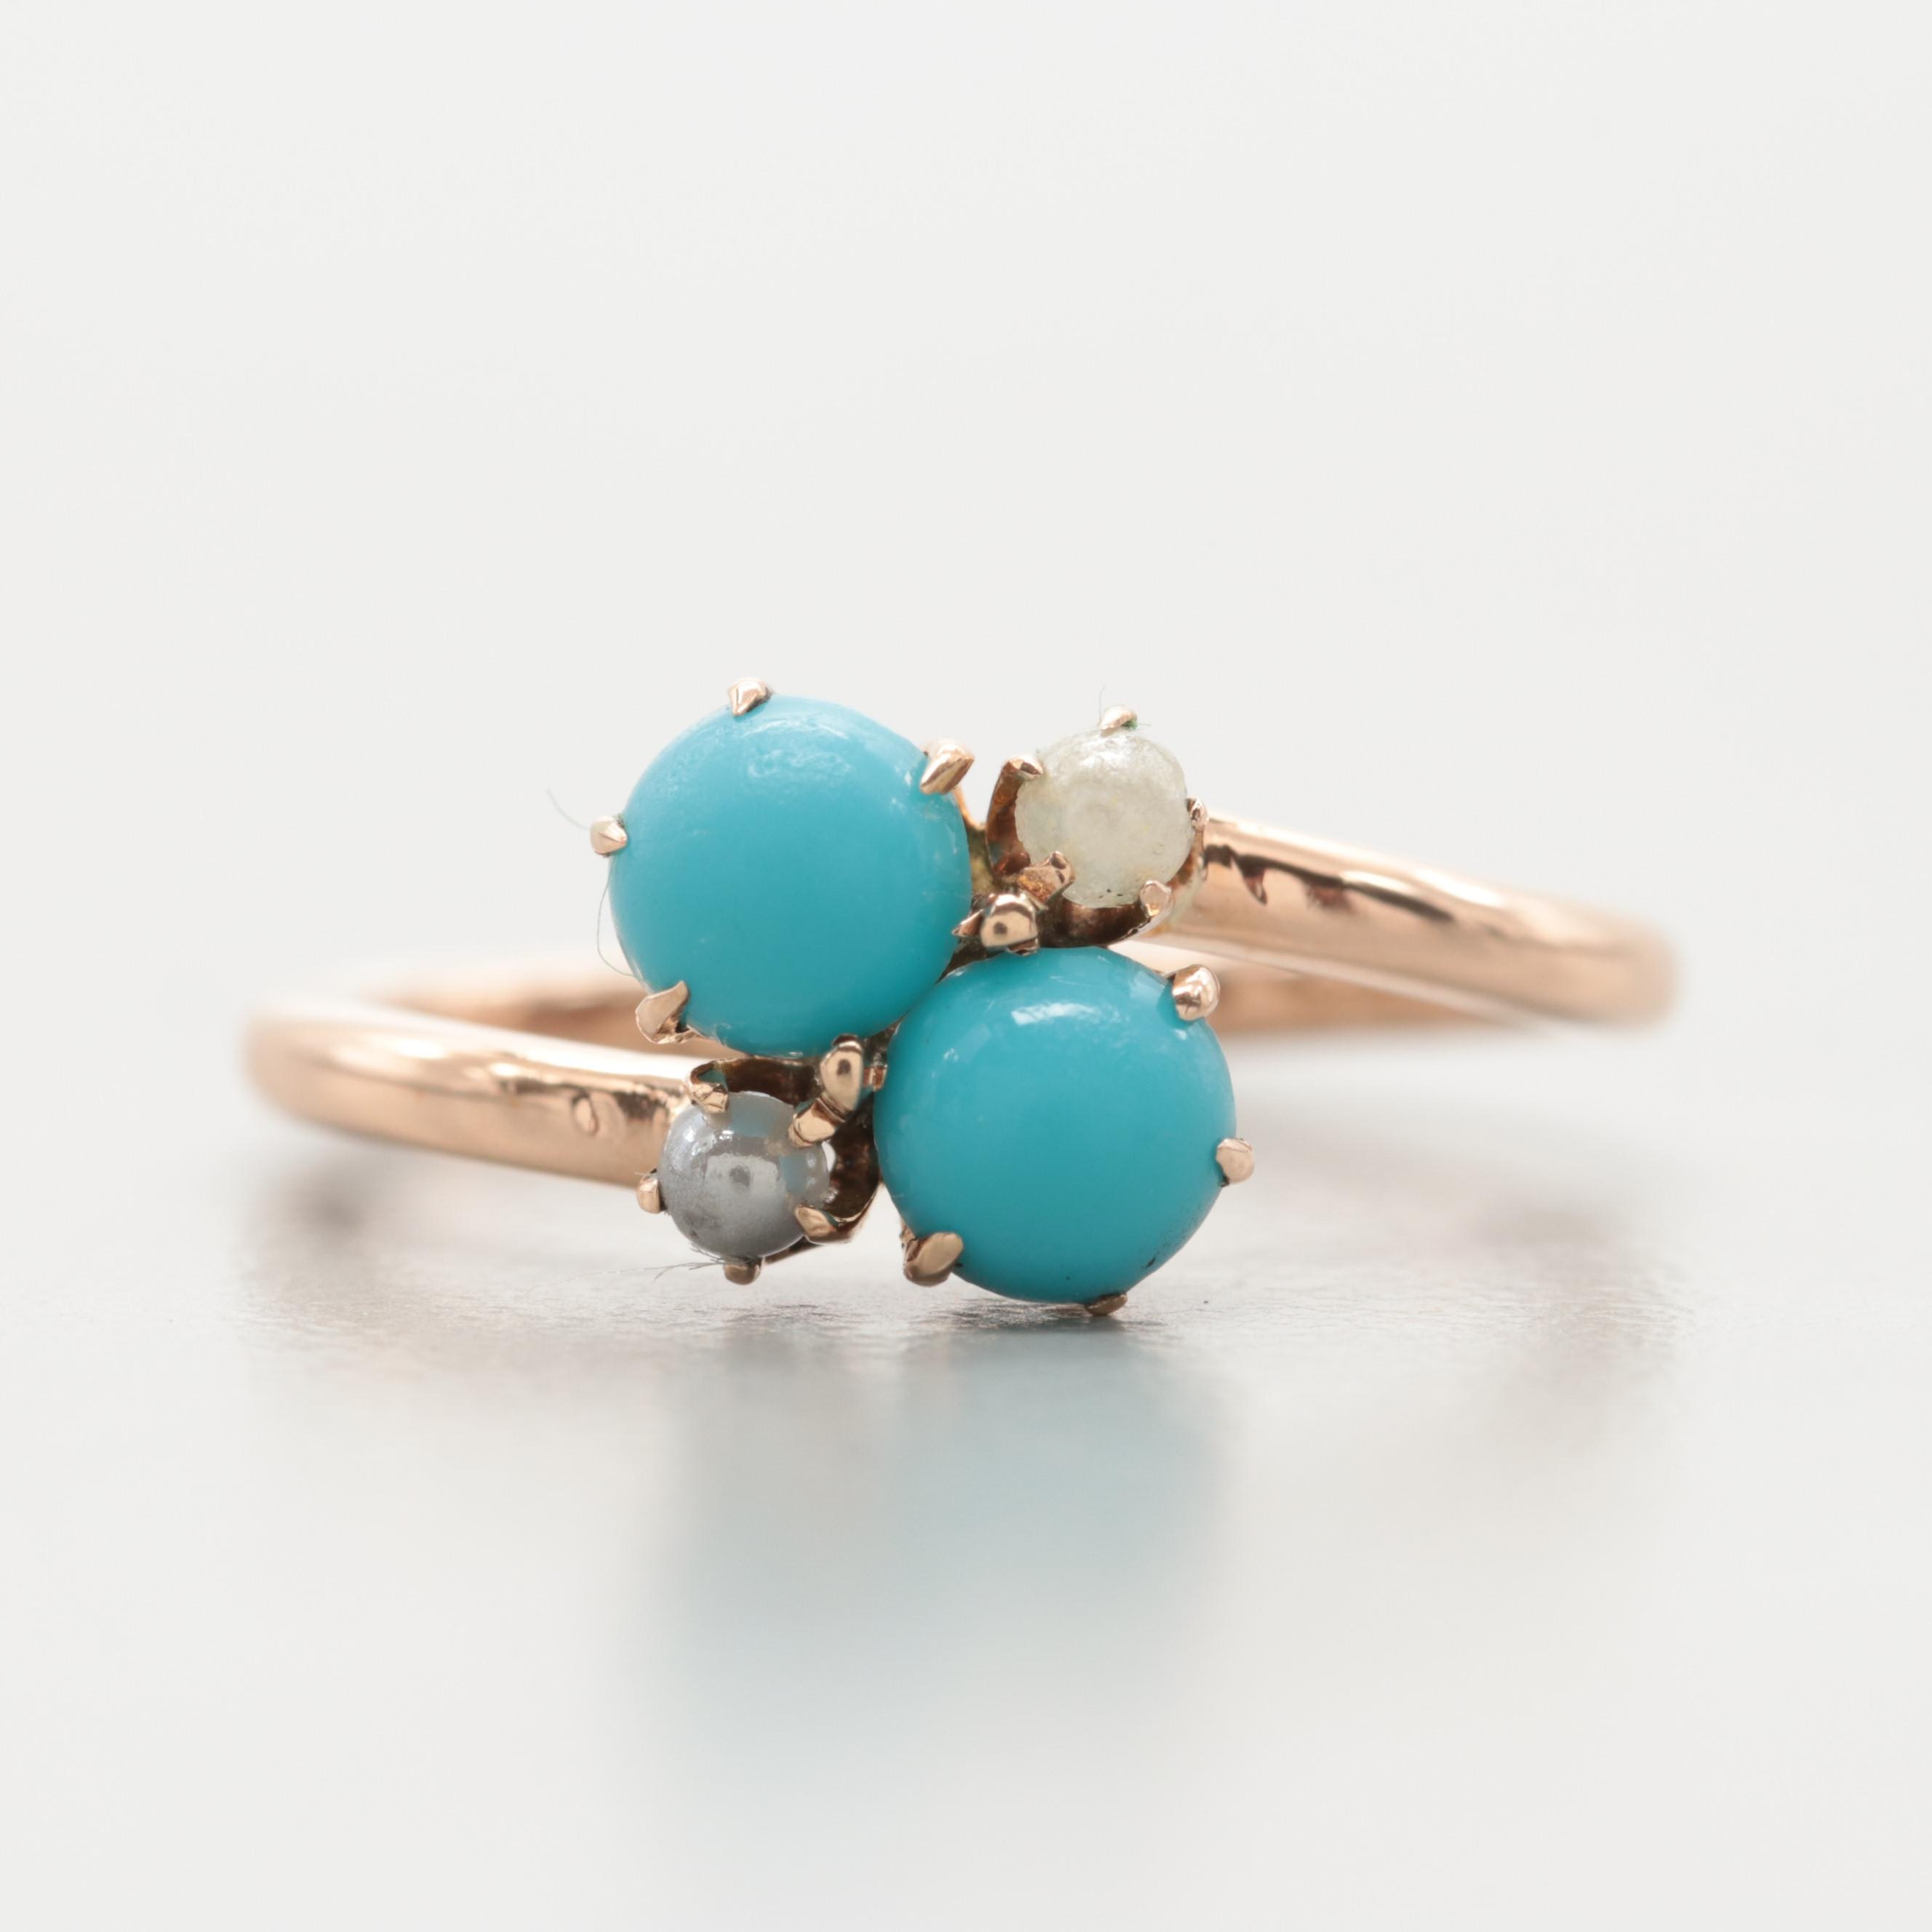 Victorian 10K Yellow Gold Imitation Turquoise and Imitation Pearl Ring